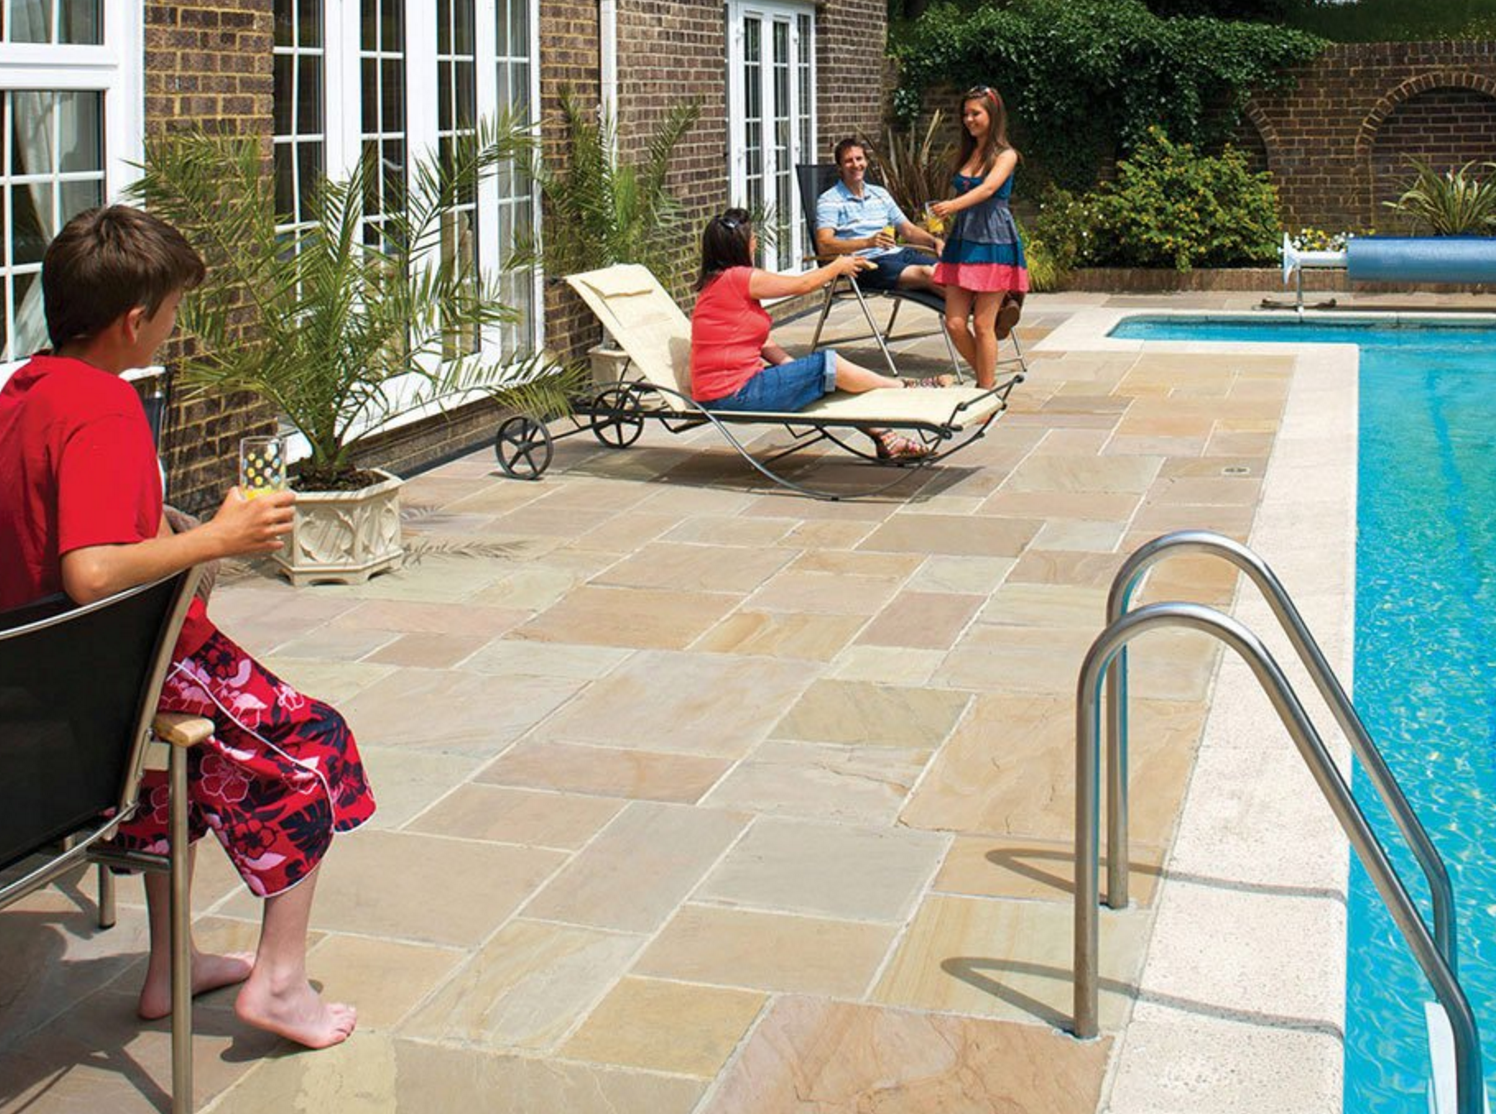 Blending Indoor and Outdoor Living Spaces with a Seamless ... on Seamless Indoor Outdoor Living id=15647